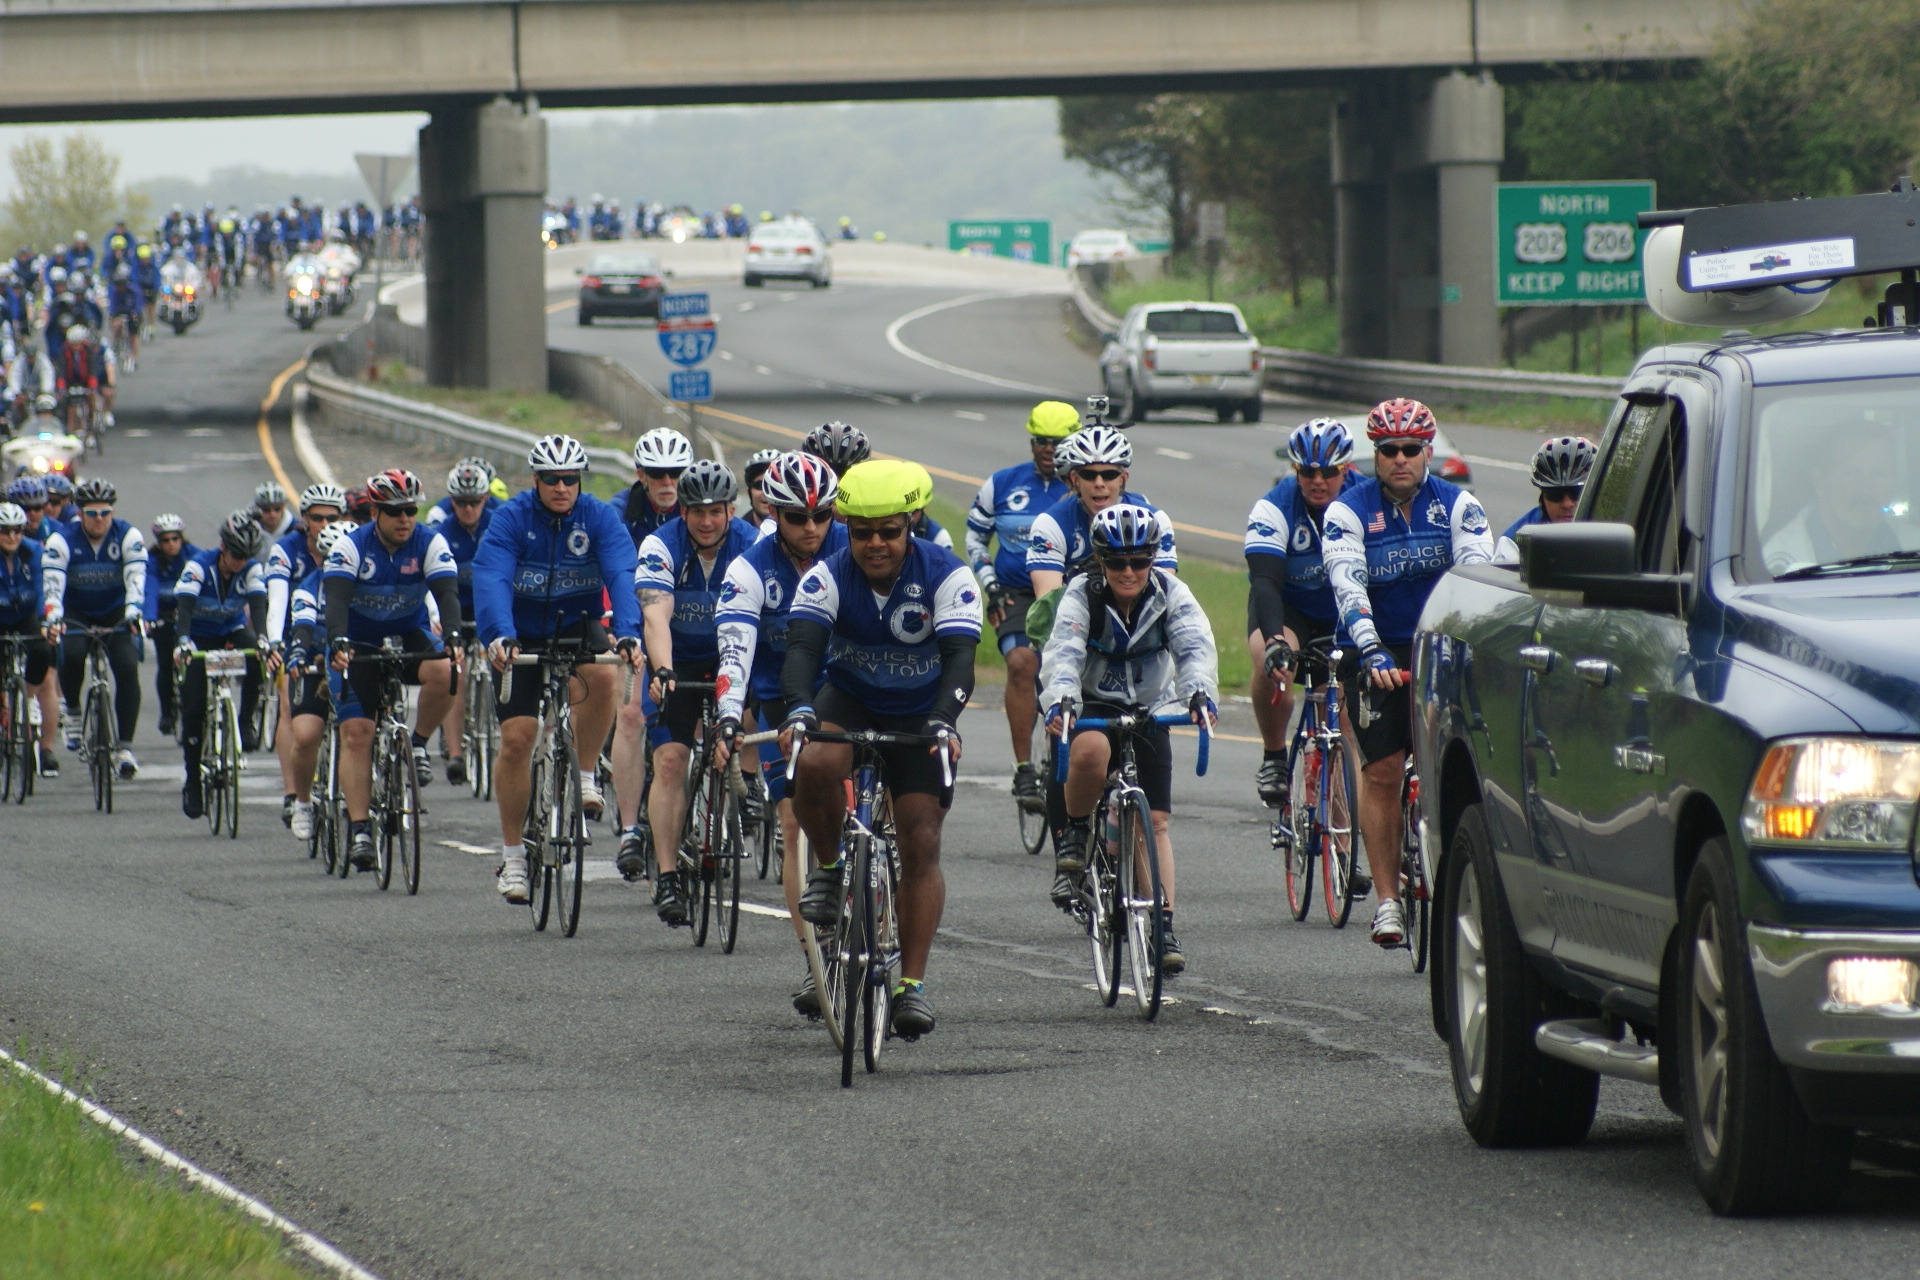 police unity tour travels through somerset county